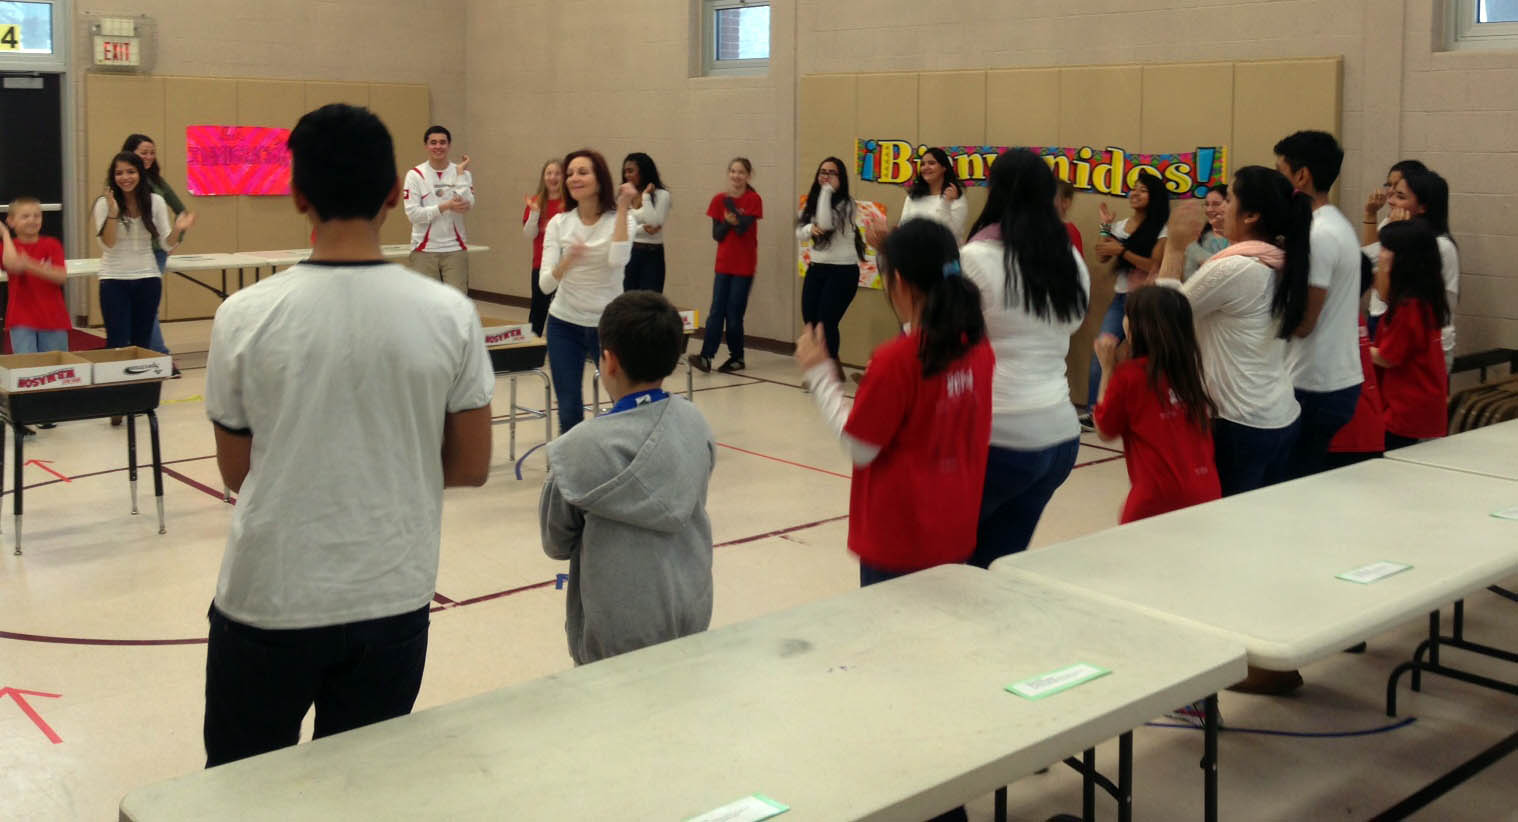 a1ace661bdc72172a65a_Students_celebrate_doing_Mexican_Hat_Dance.jpg